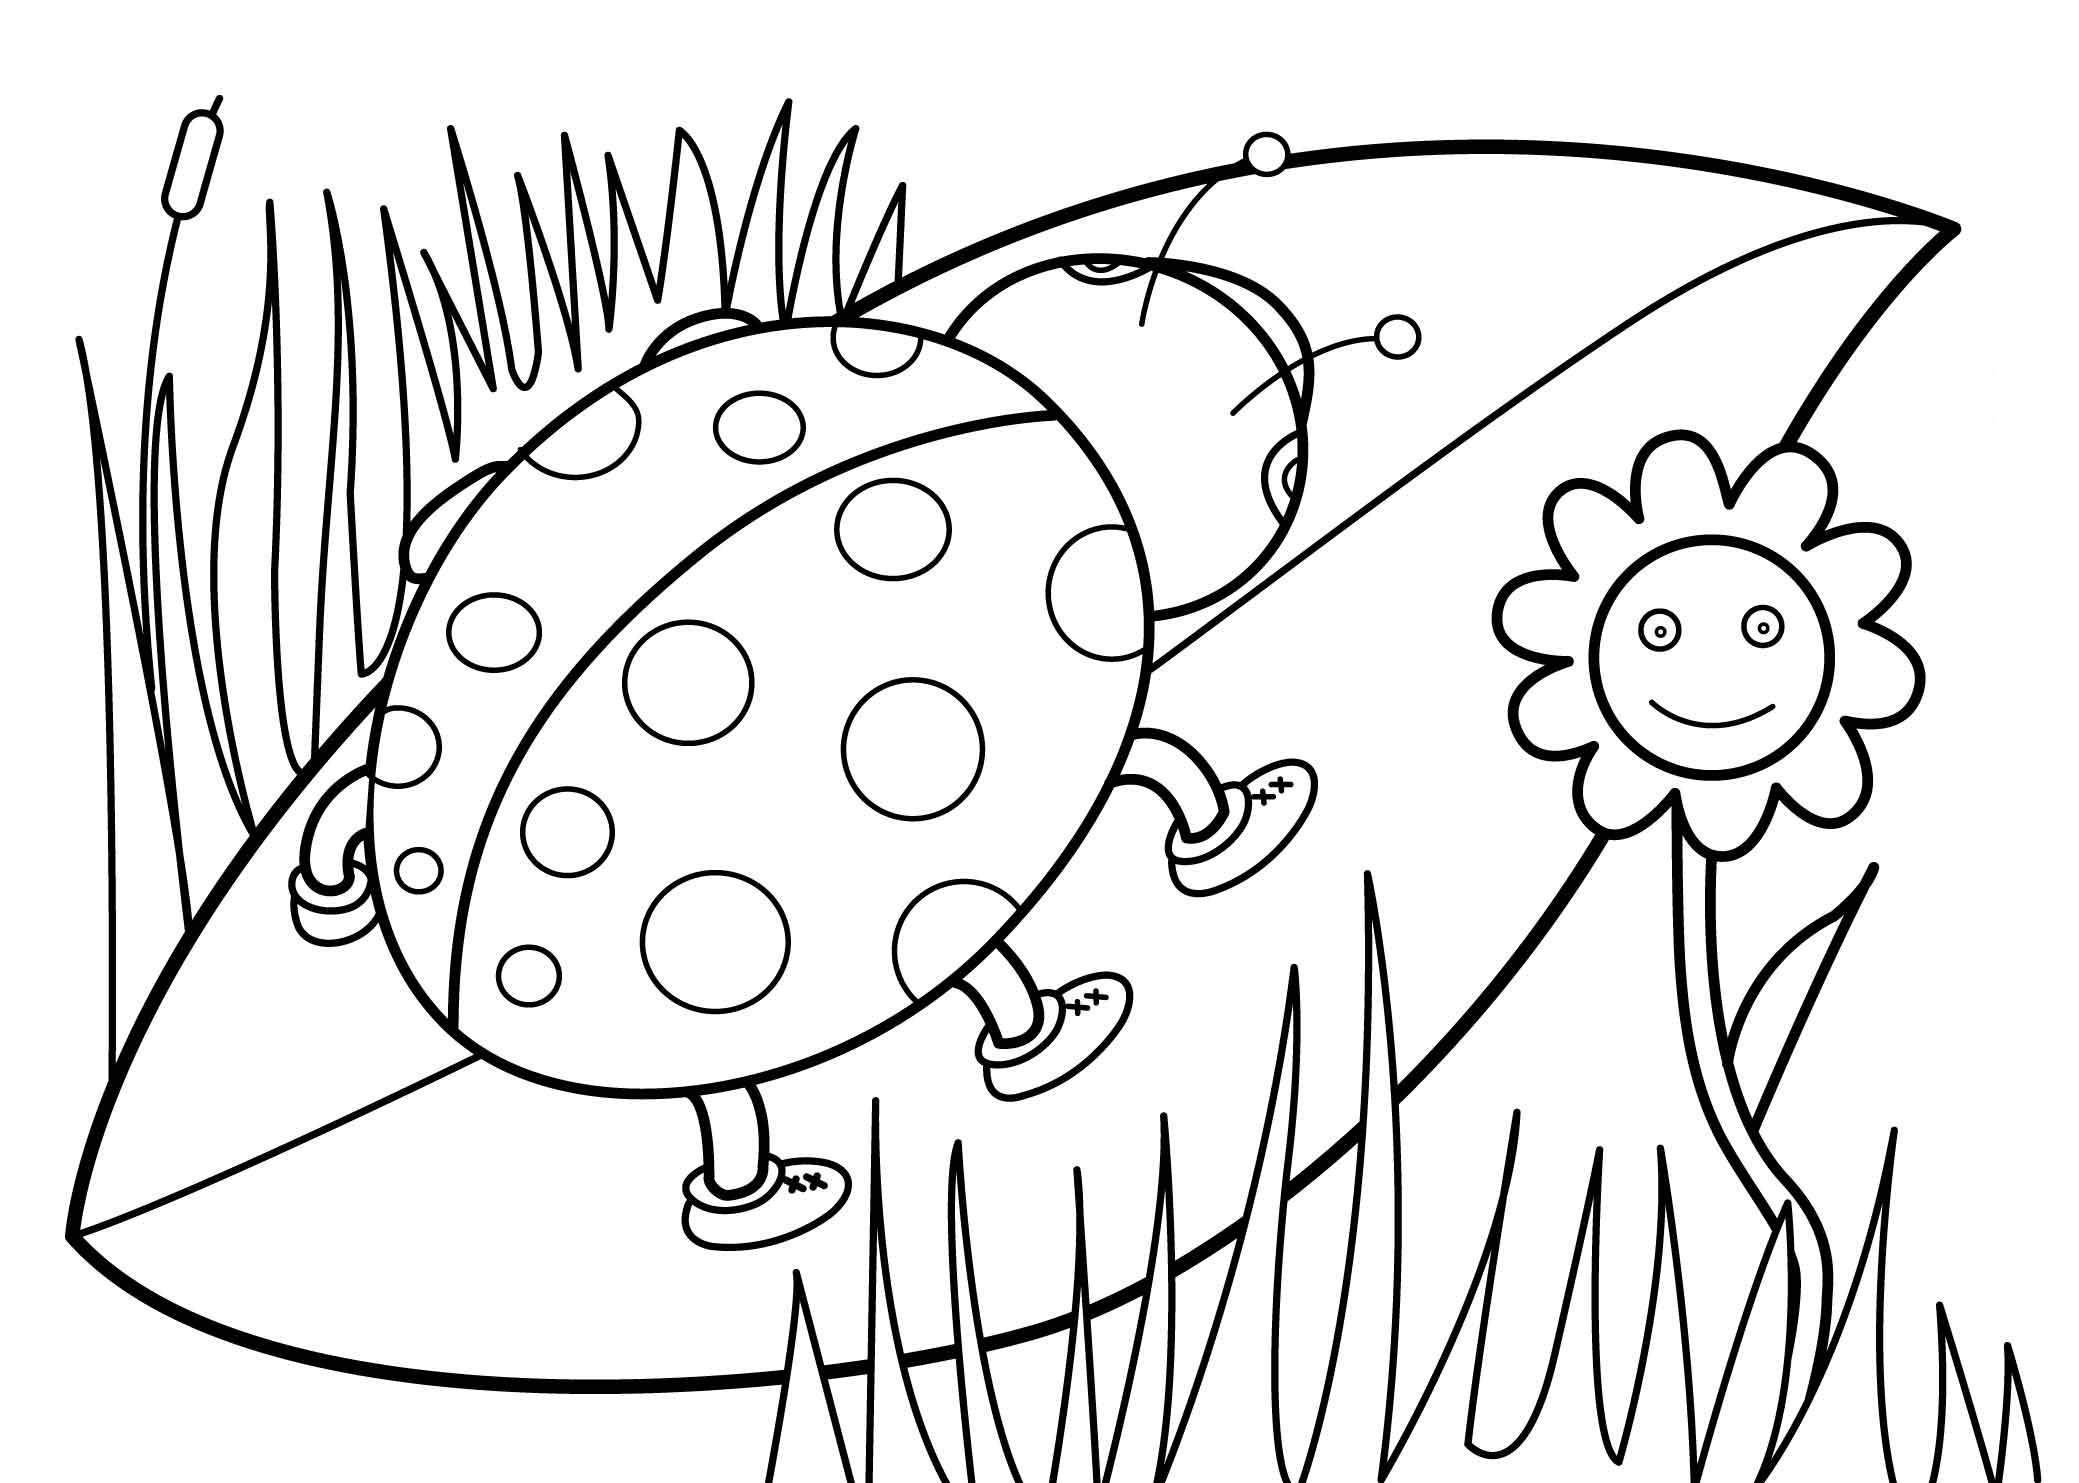 coloring printable pages for kids free printable pinocchio coloring pages for kids for kids printable coloring pages